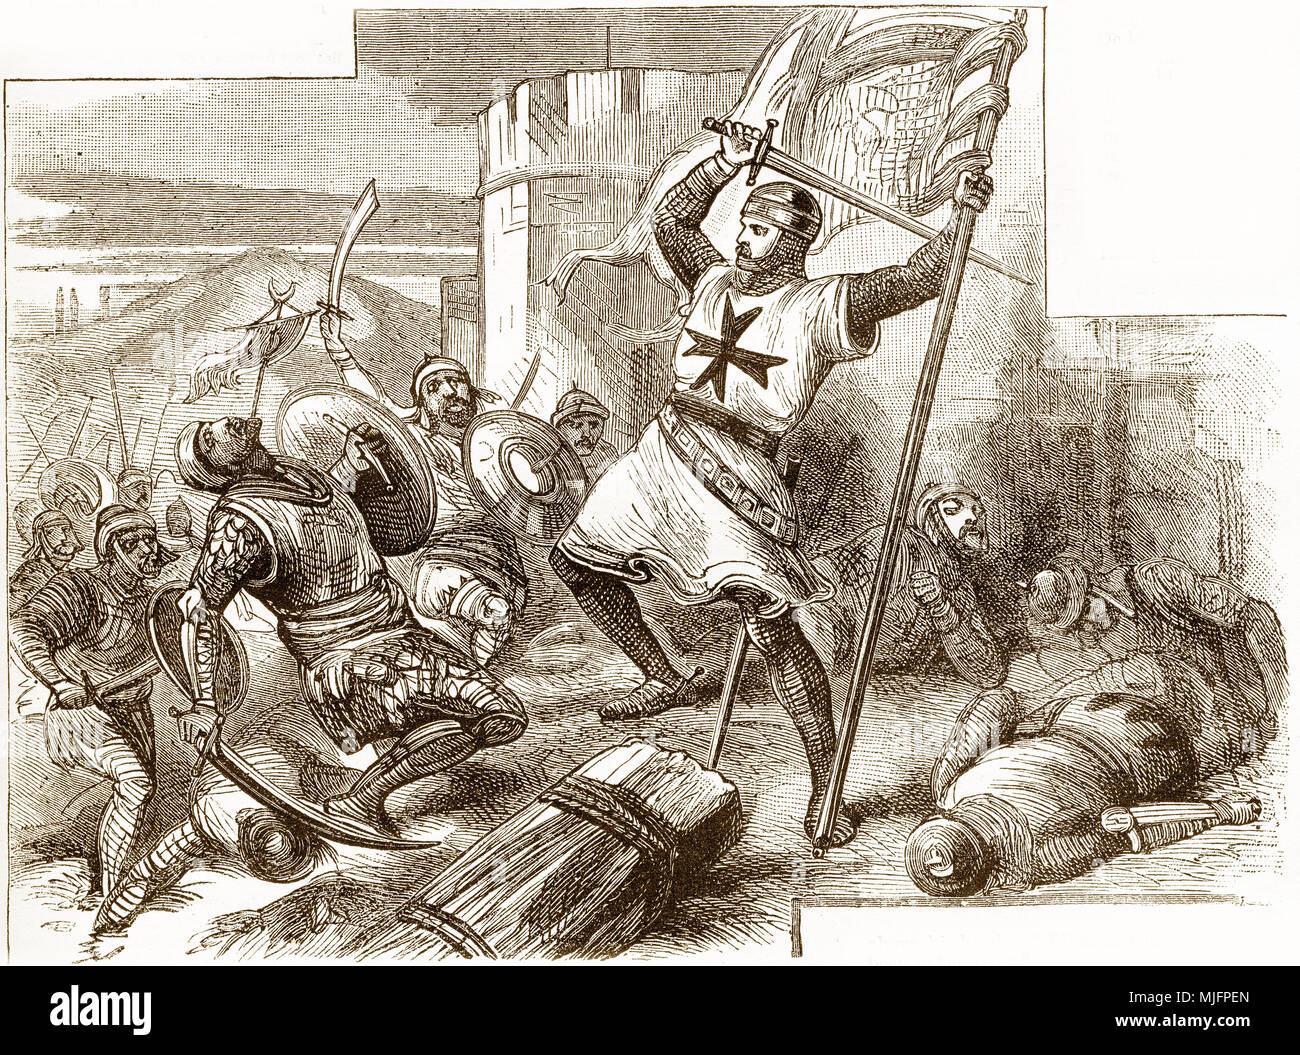 Engraving of a knight battling Moslems during one of the crusades. From an original engraving in the Boys of England magazine 1894. - Stock Image